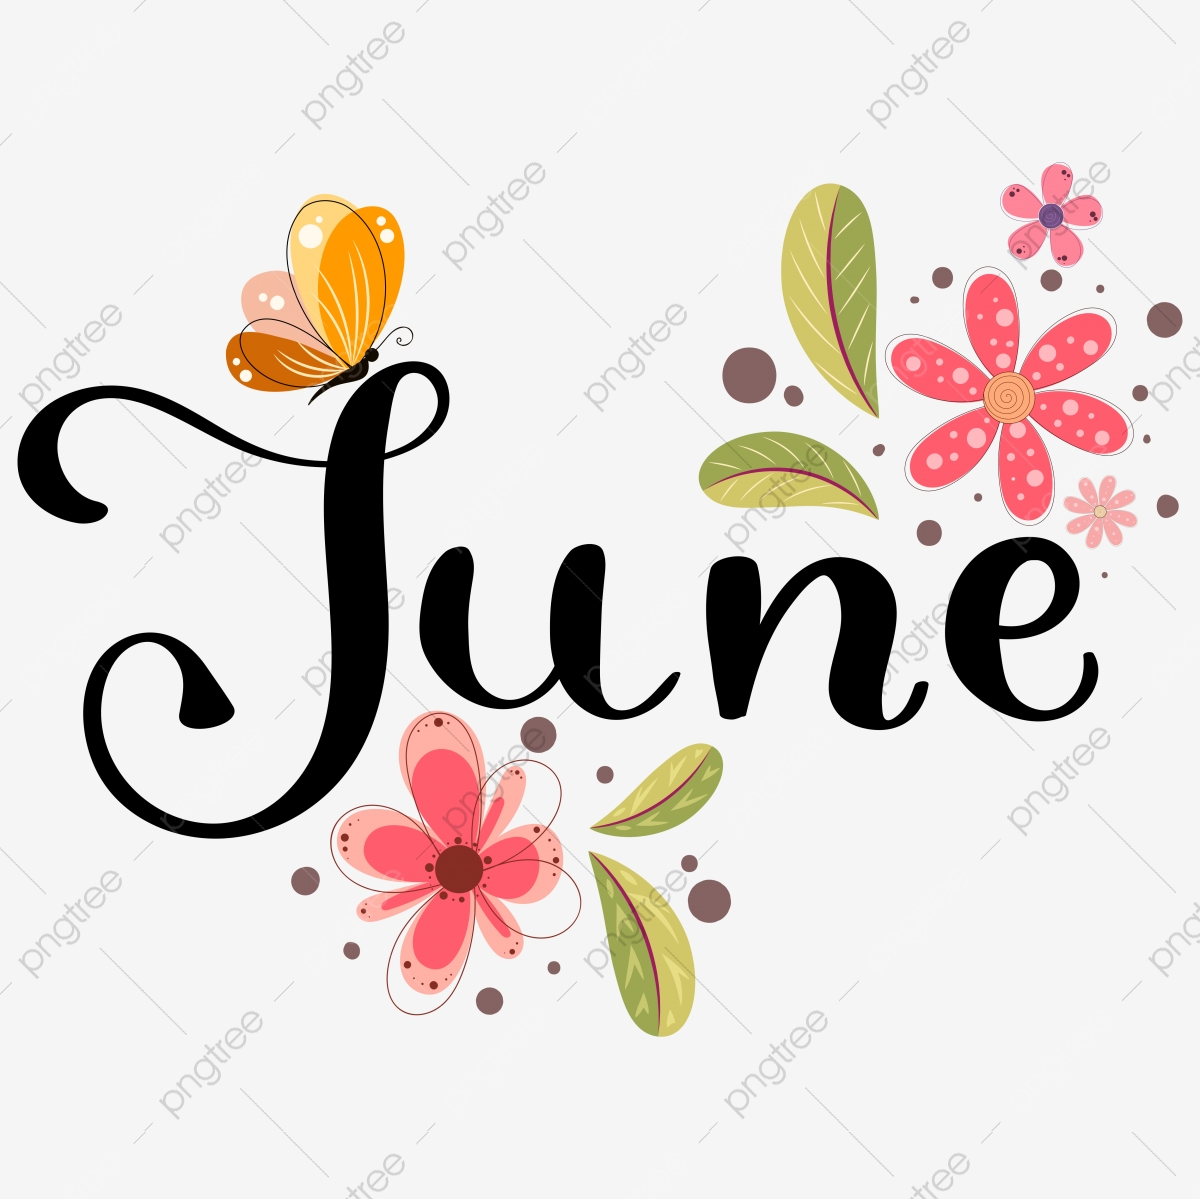 June Png Images Vector And Psd Files Free Download On Pngtree